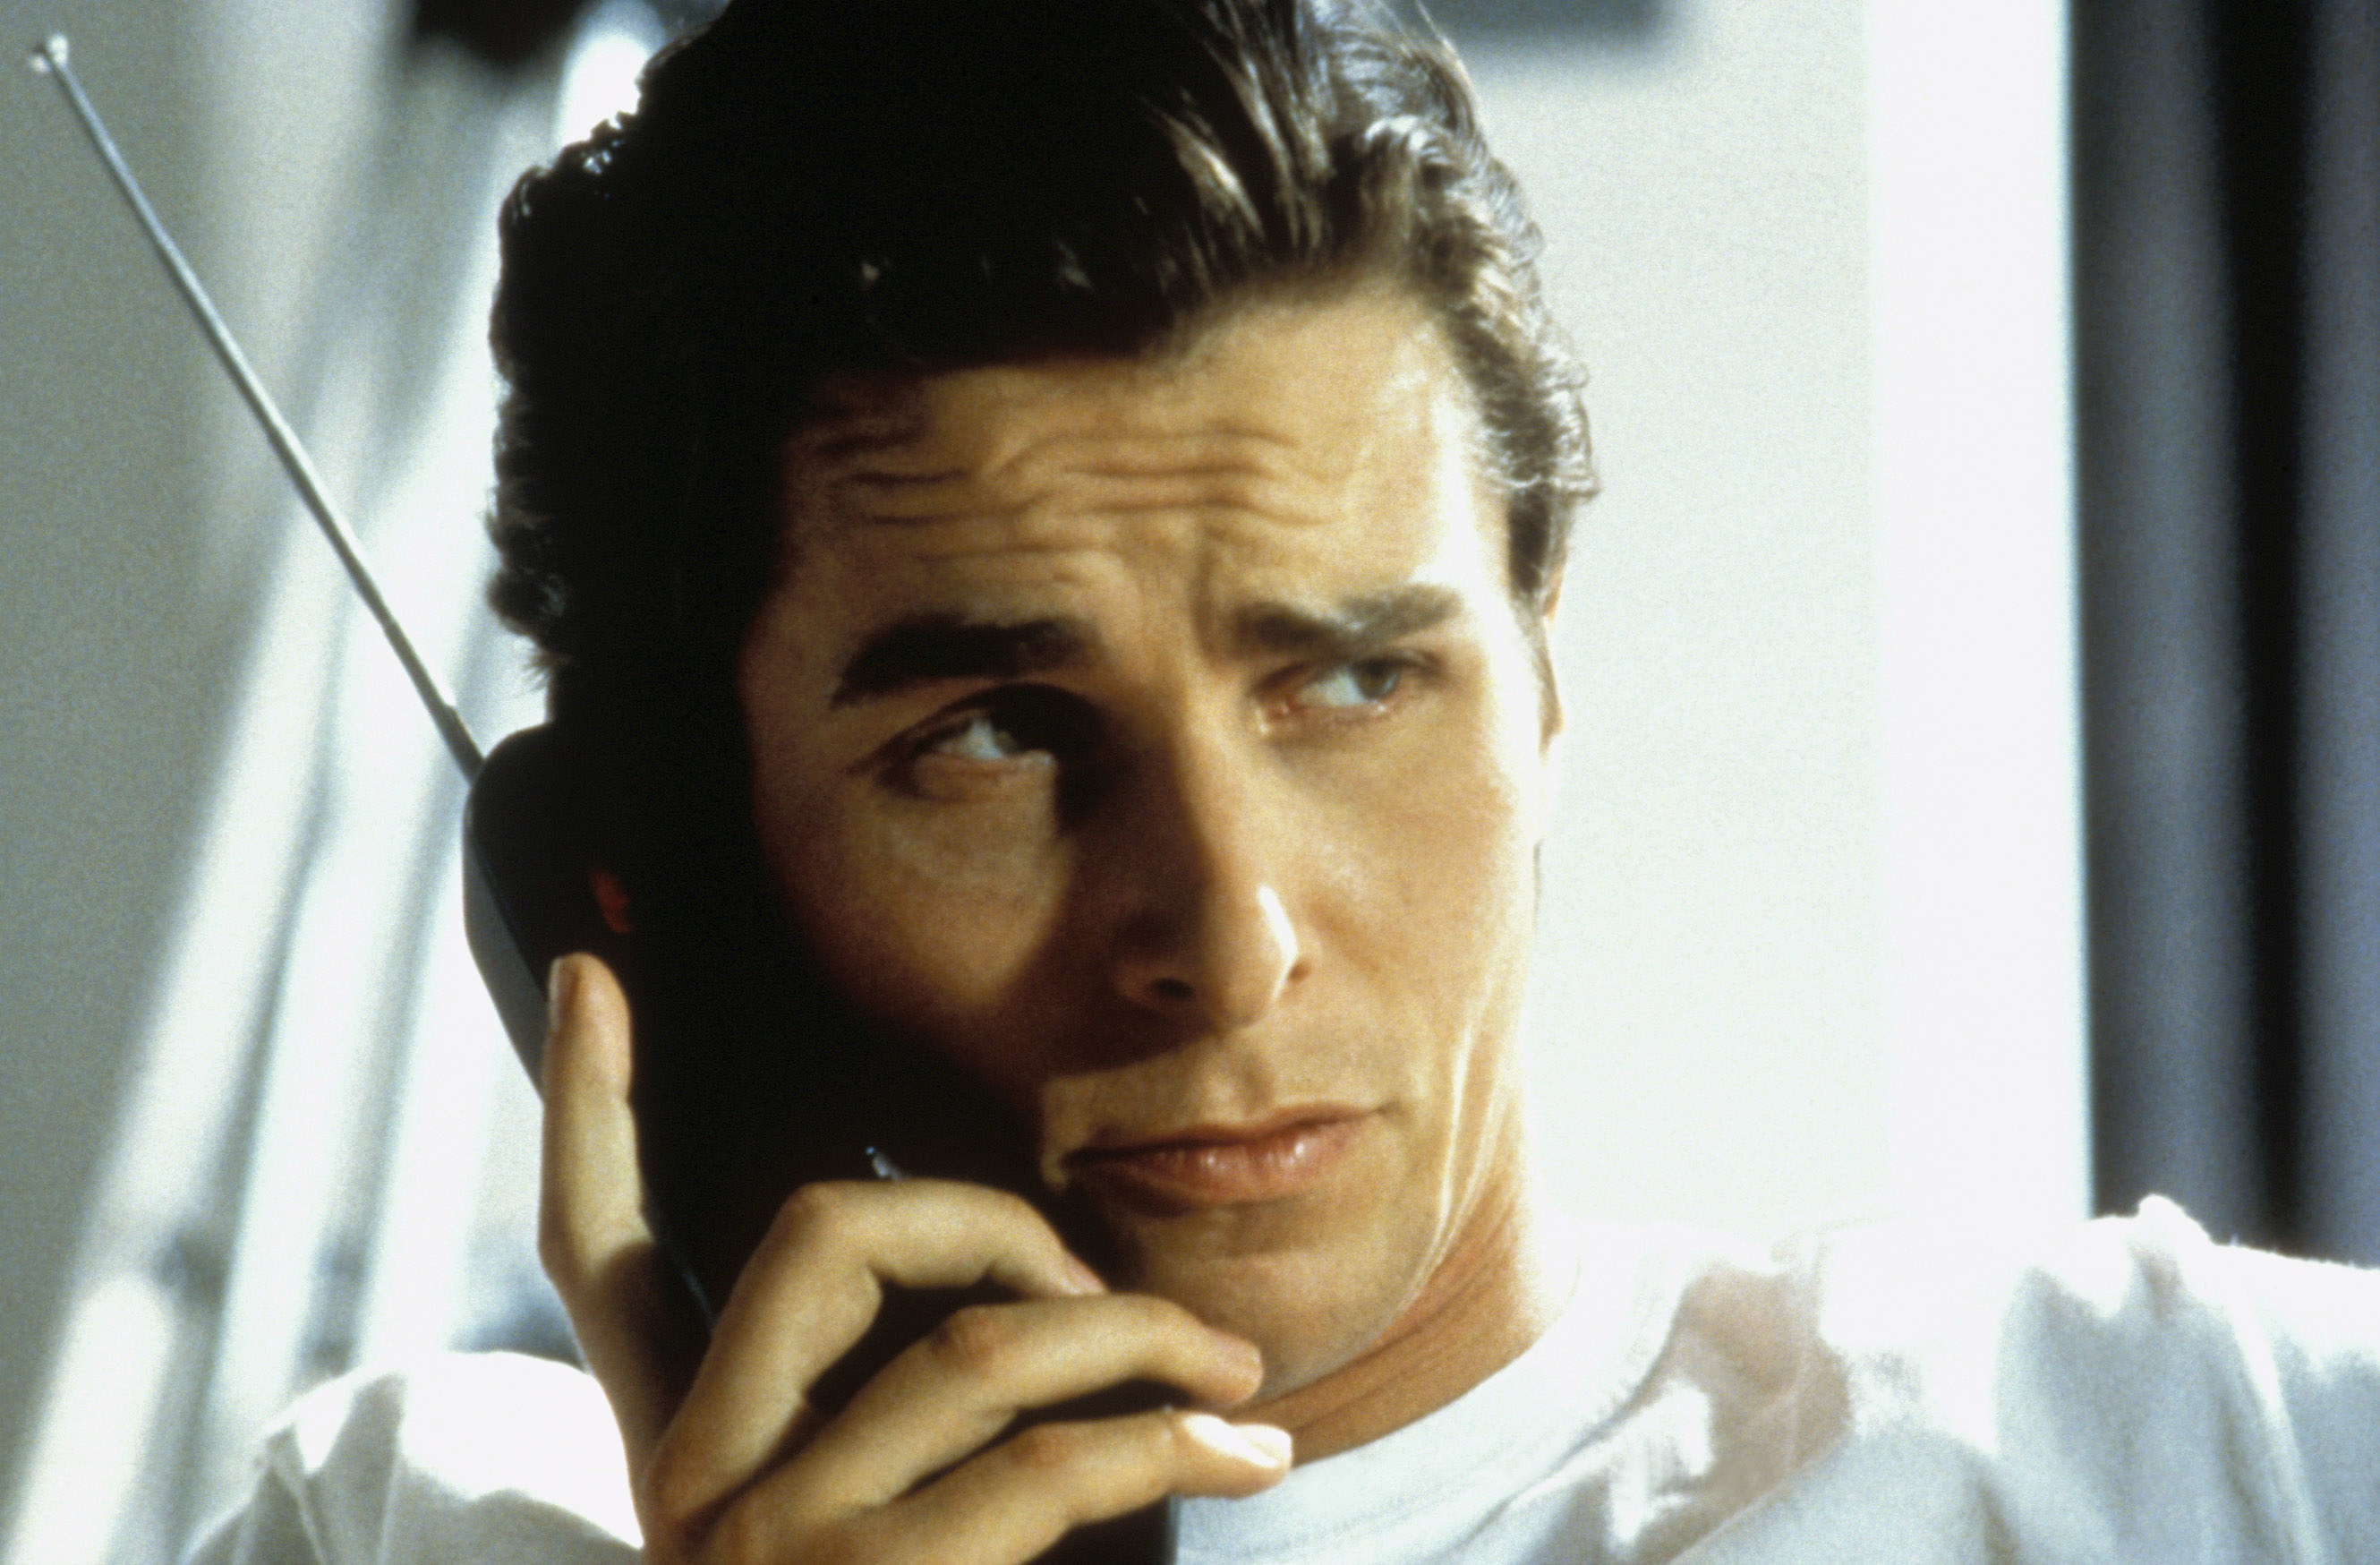 christian bale on the phone